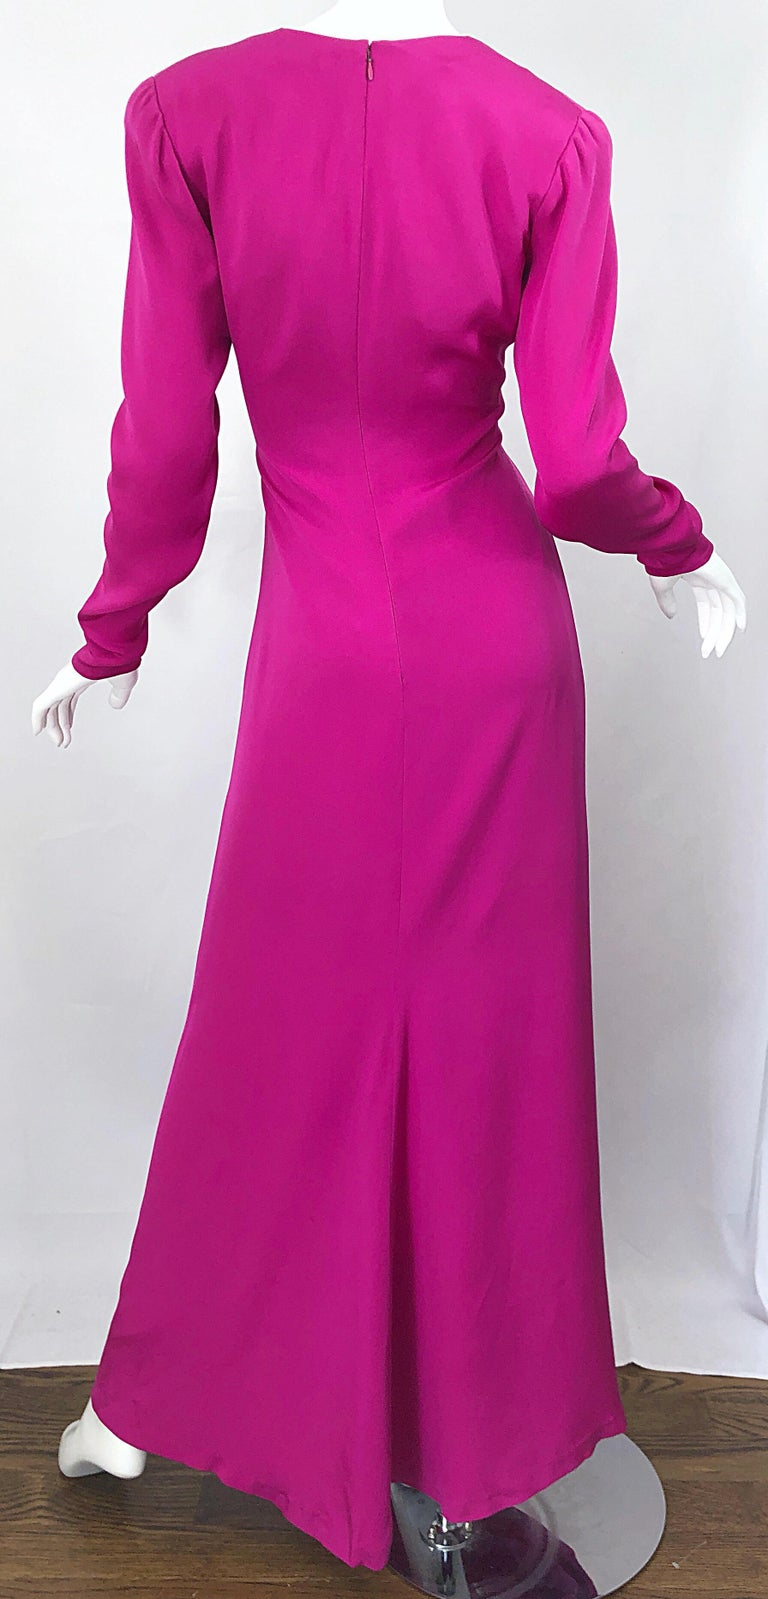 Vintage Bill Blass Size 10 Hot Pink Silk Jersey Cut - Out 1980s 80s Evening Gown For Sale 8